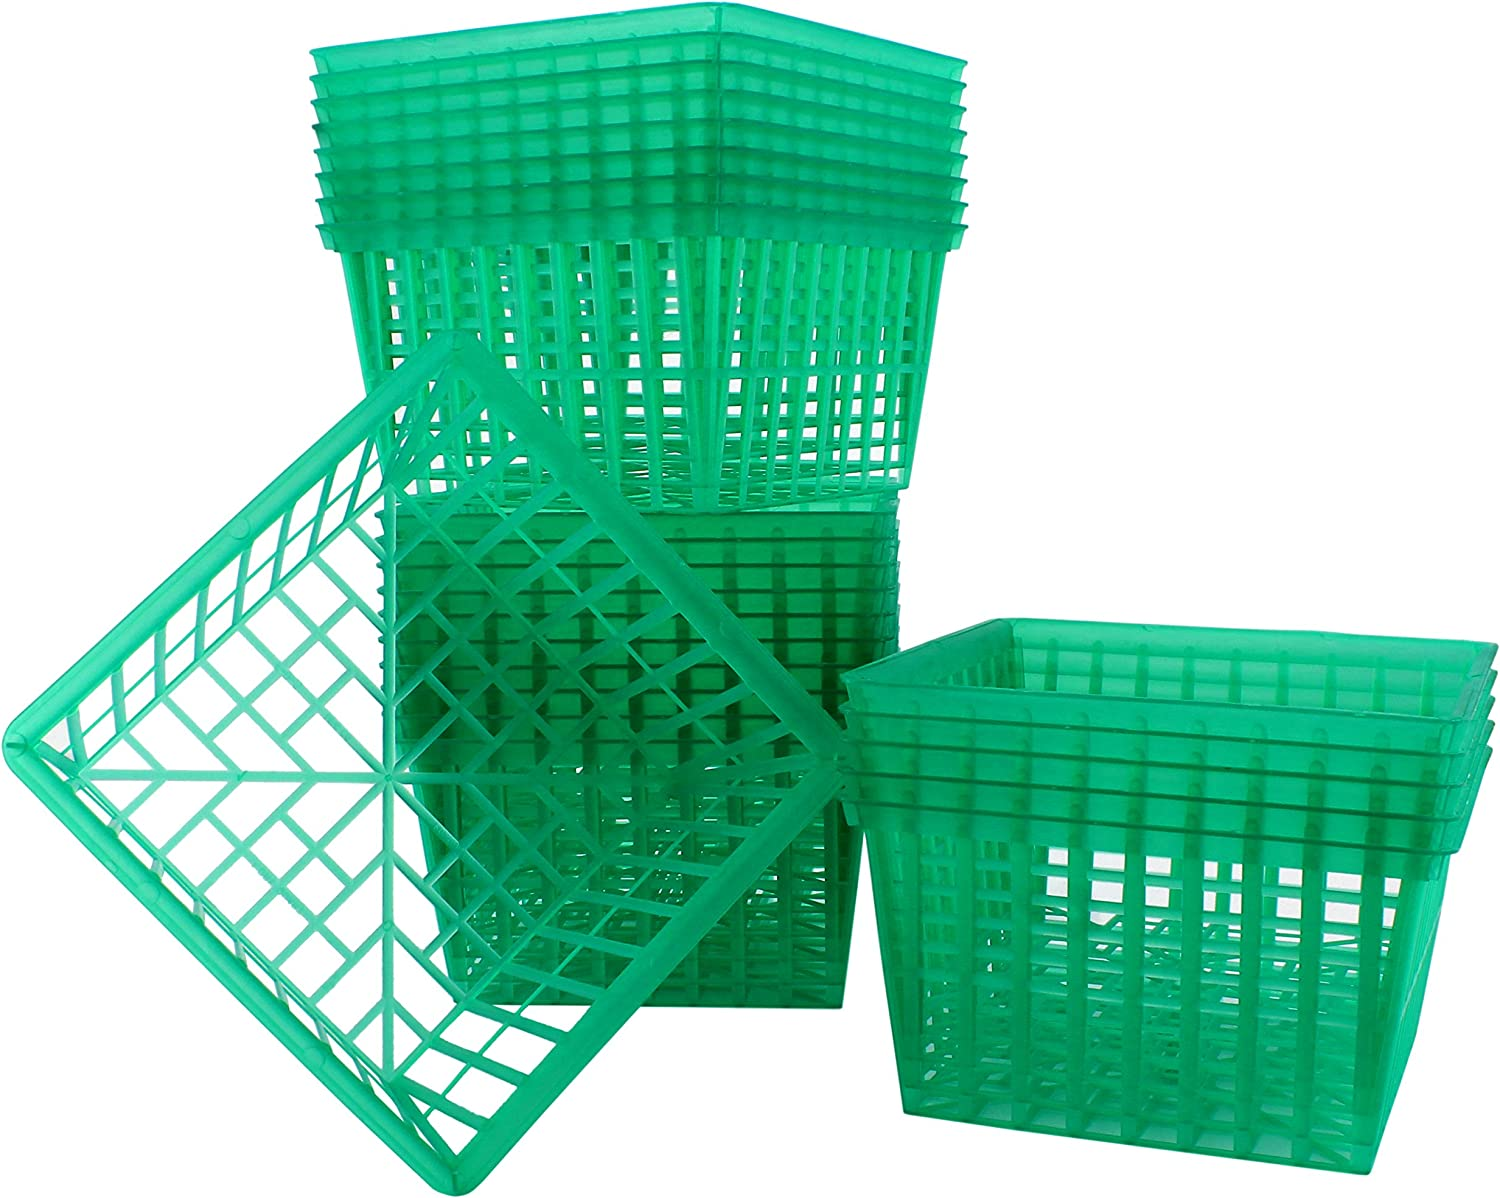 24-Pack Quart Size Plastic Berry Baskets; 5 ½-Inch Green Berry Boxes w/Open-Weave Pattern; Ideal for Berries, Fruit, Vegetables & Craft Projects